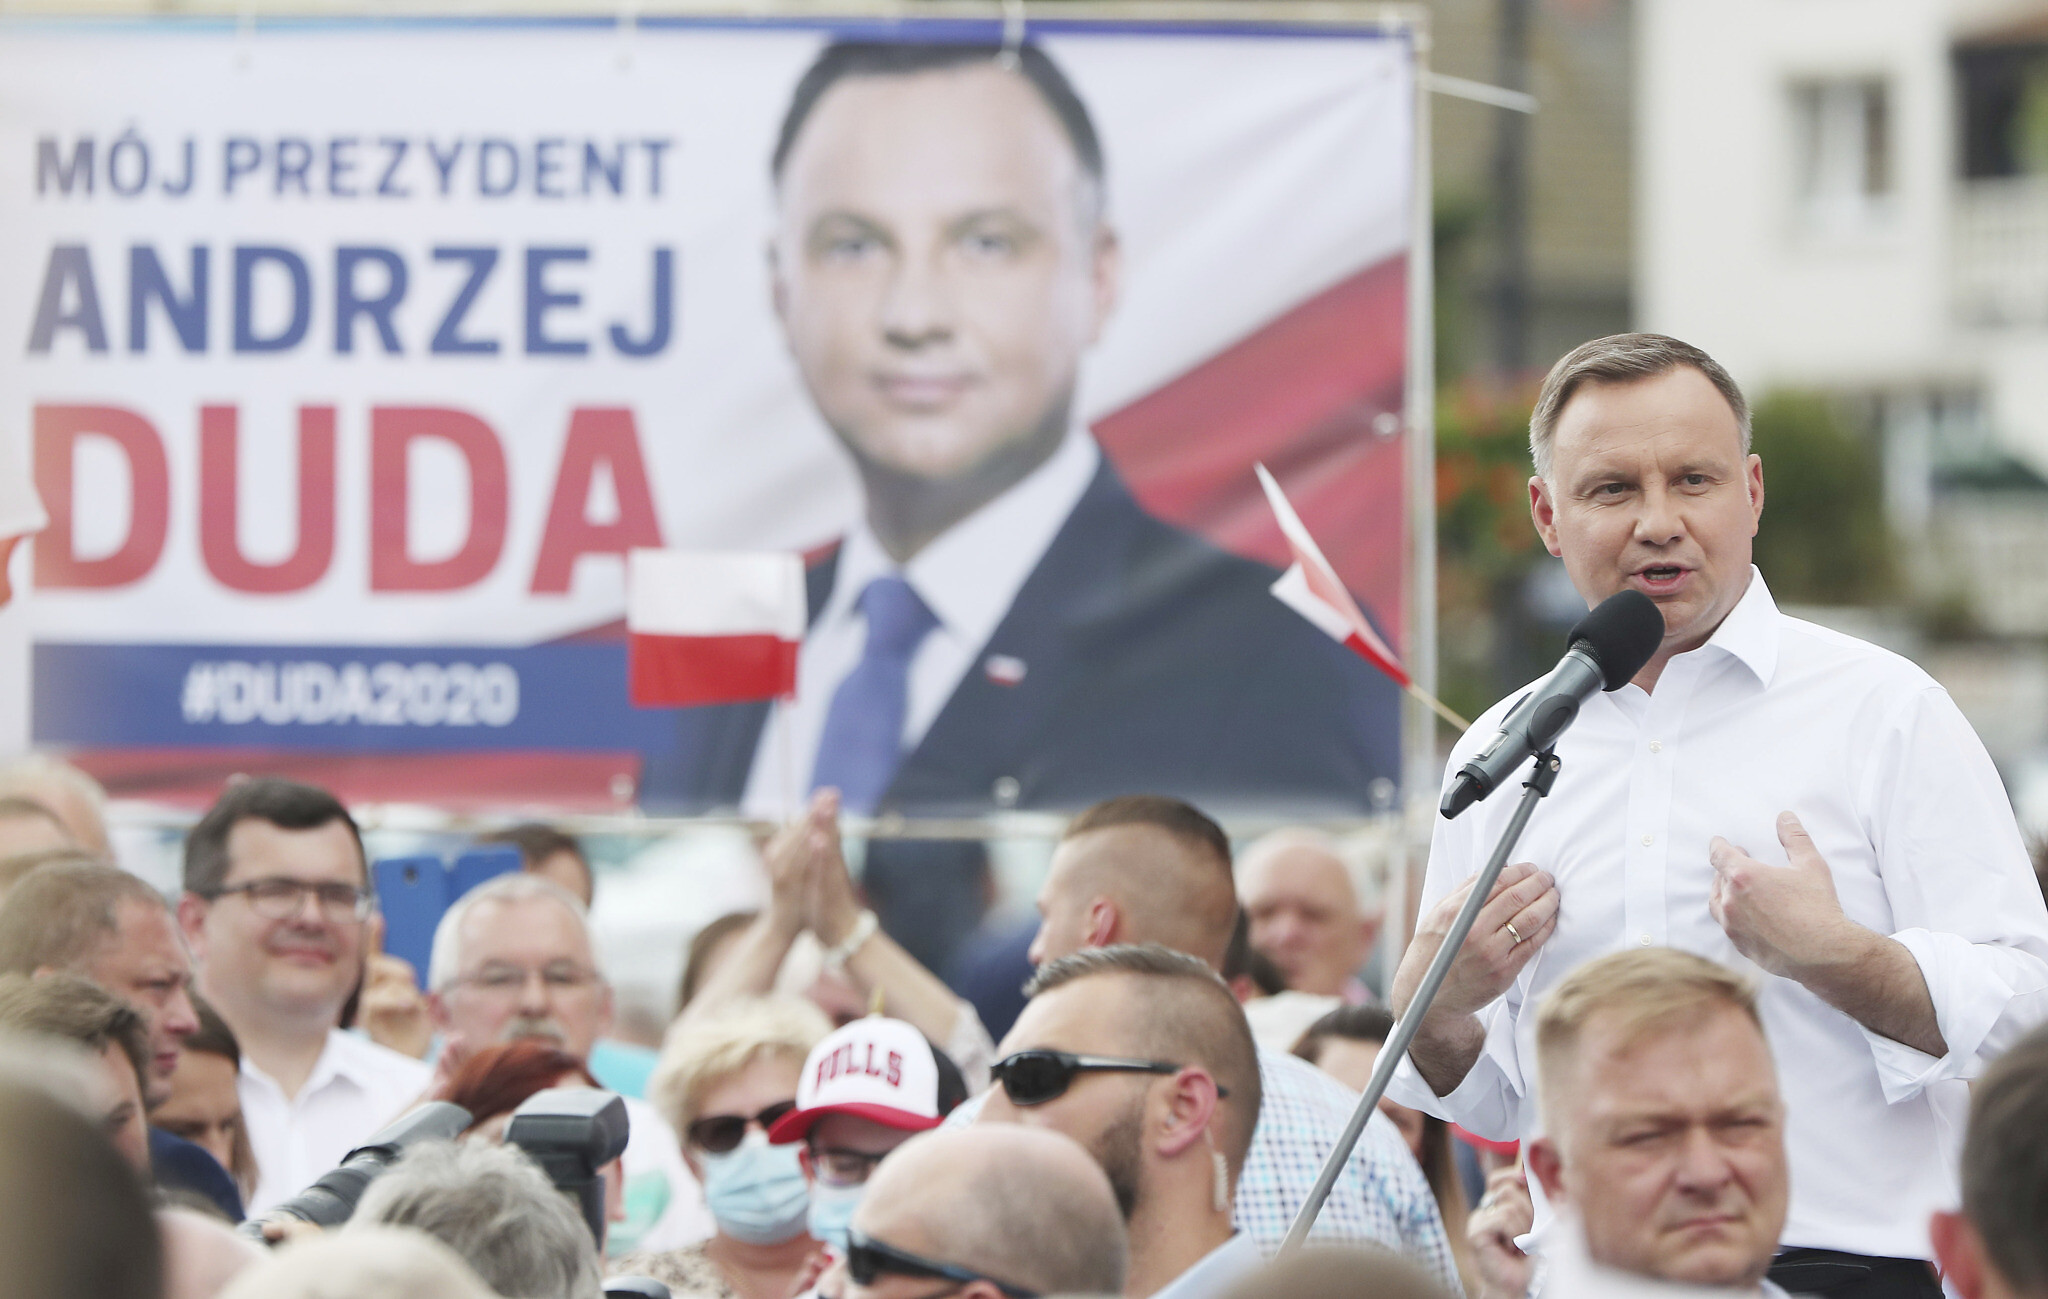 Duda leads in Polish presidential vote: official results